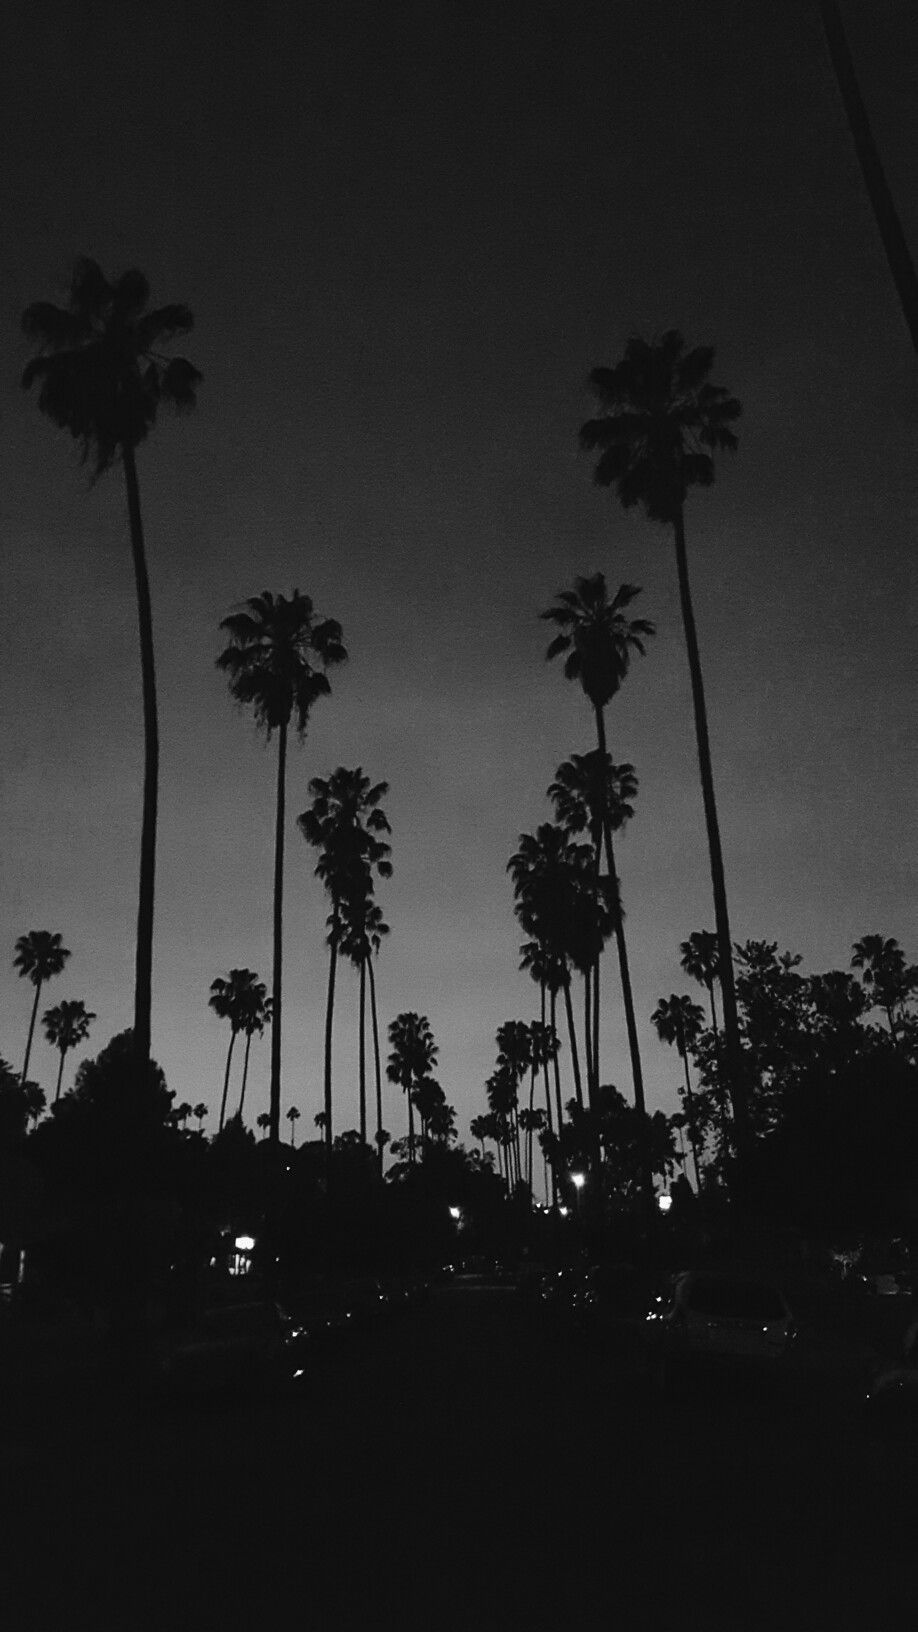 La Vibes Black Aesthetic Wallpaper Black And White Picture Wall Black And White Aesthetic